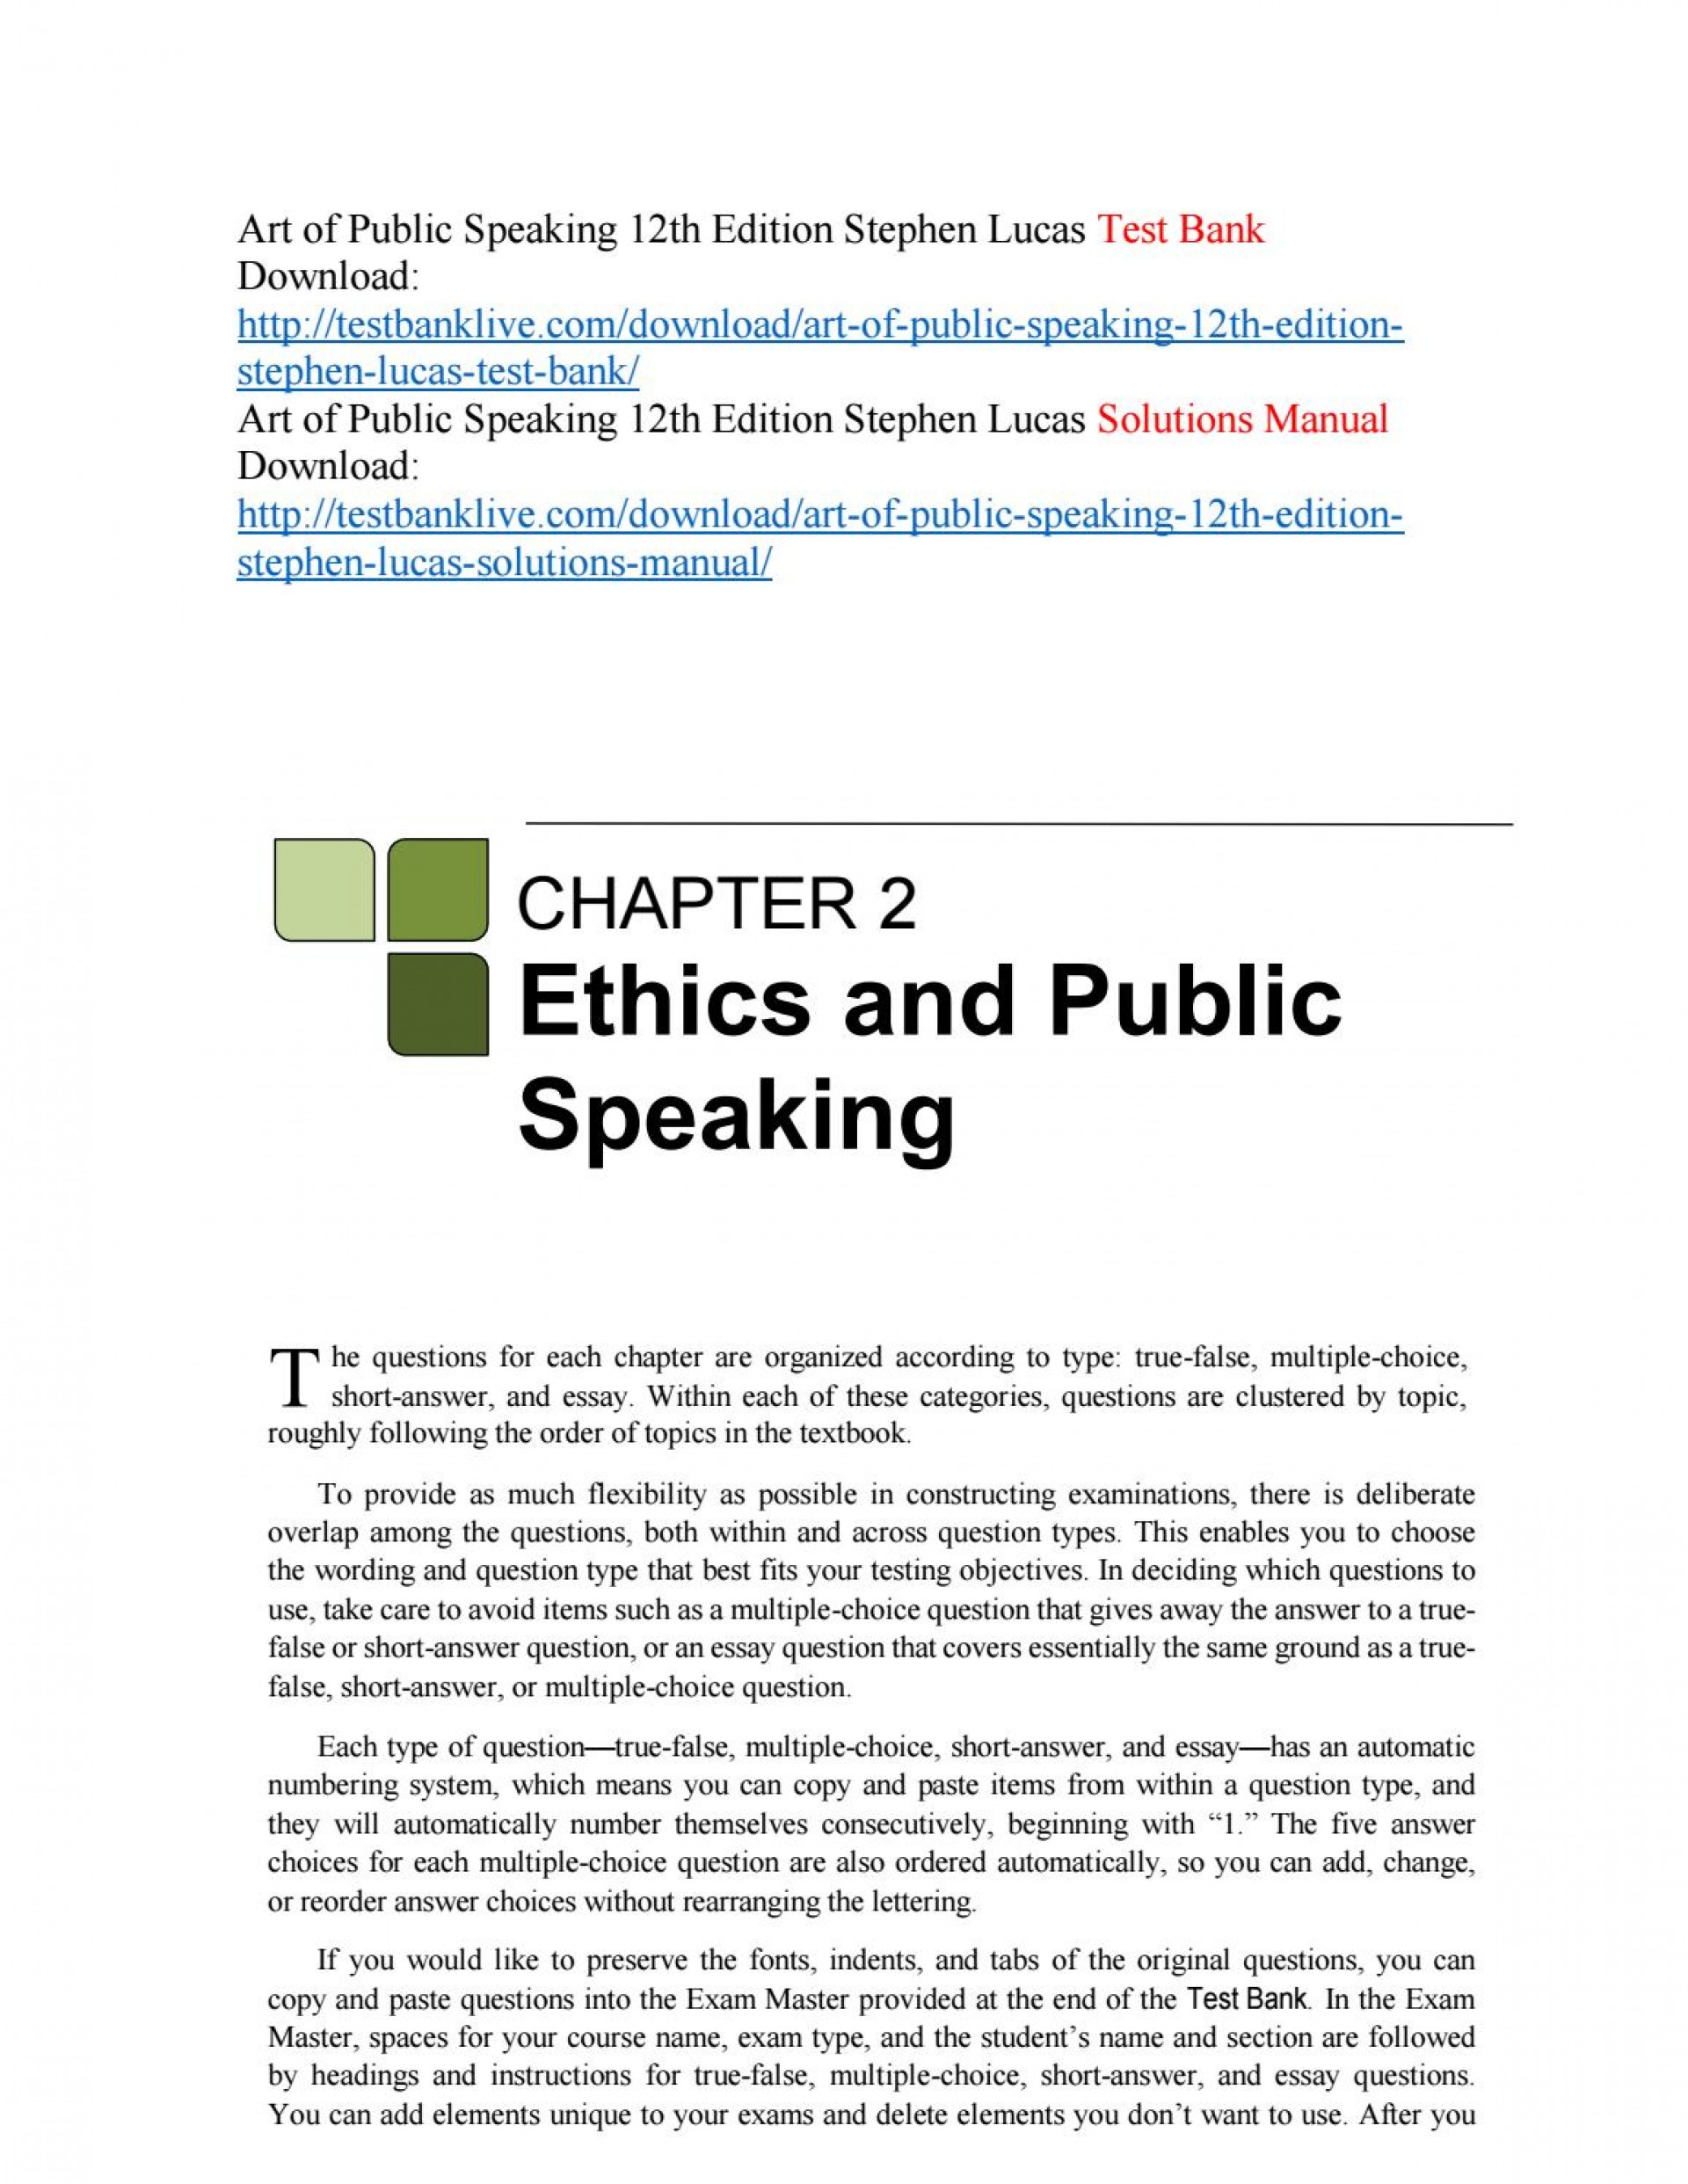 009 Public Speaking Essay Example Page 1 Stunning Topics Introduction 1920